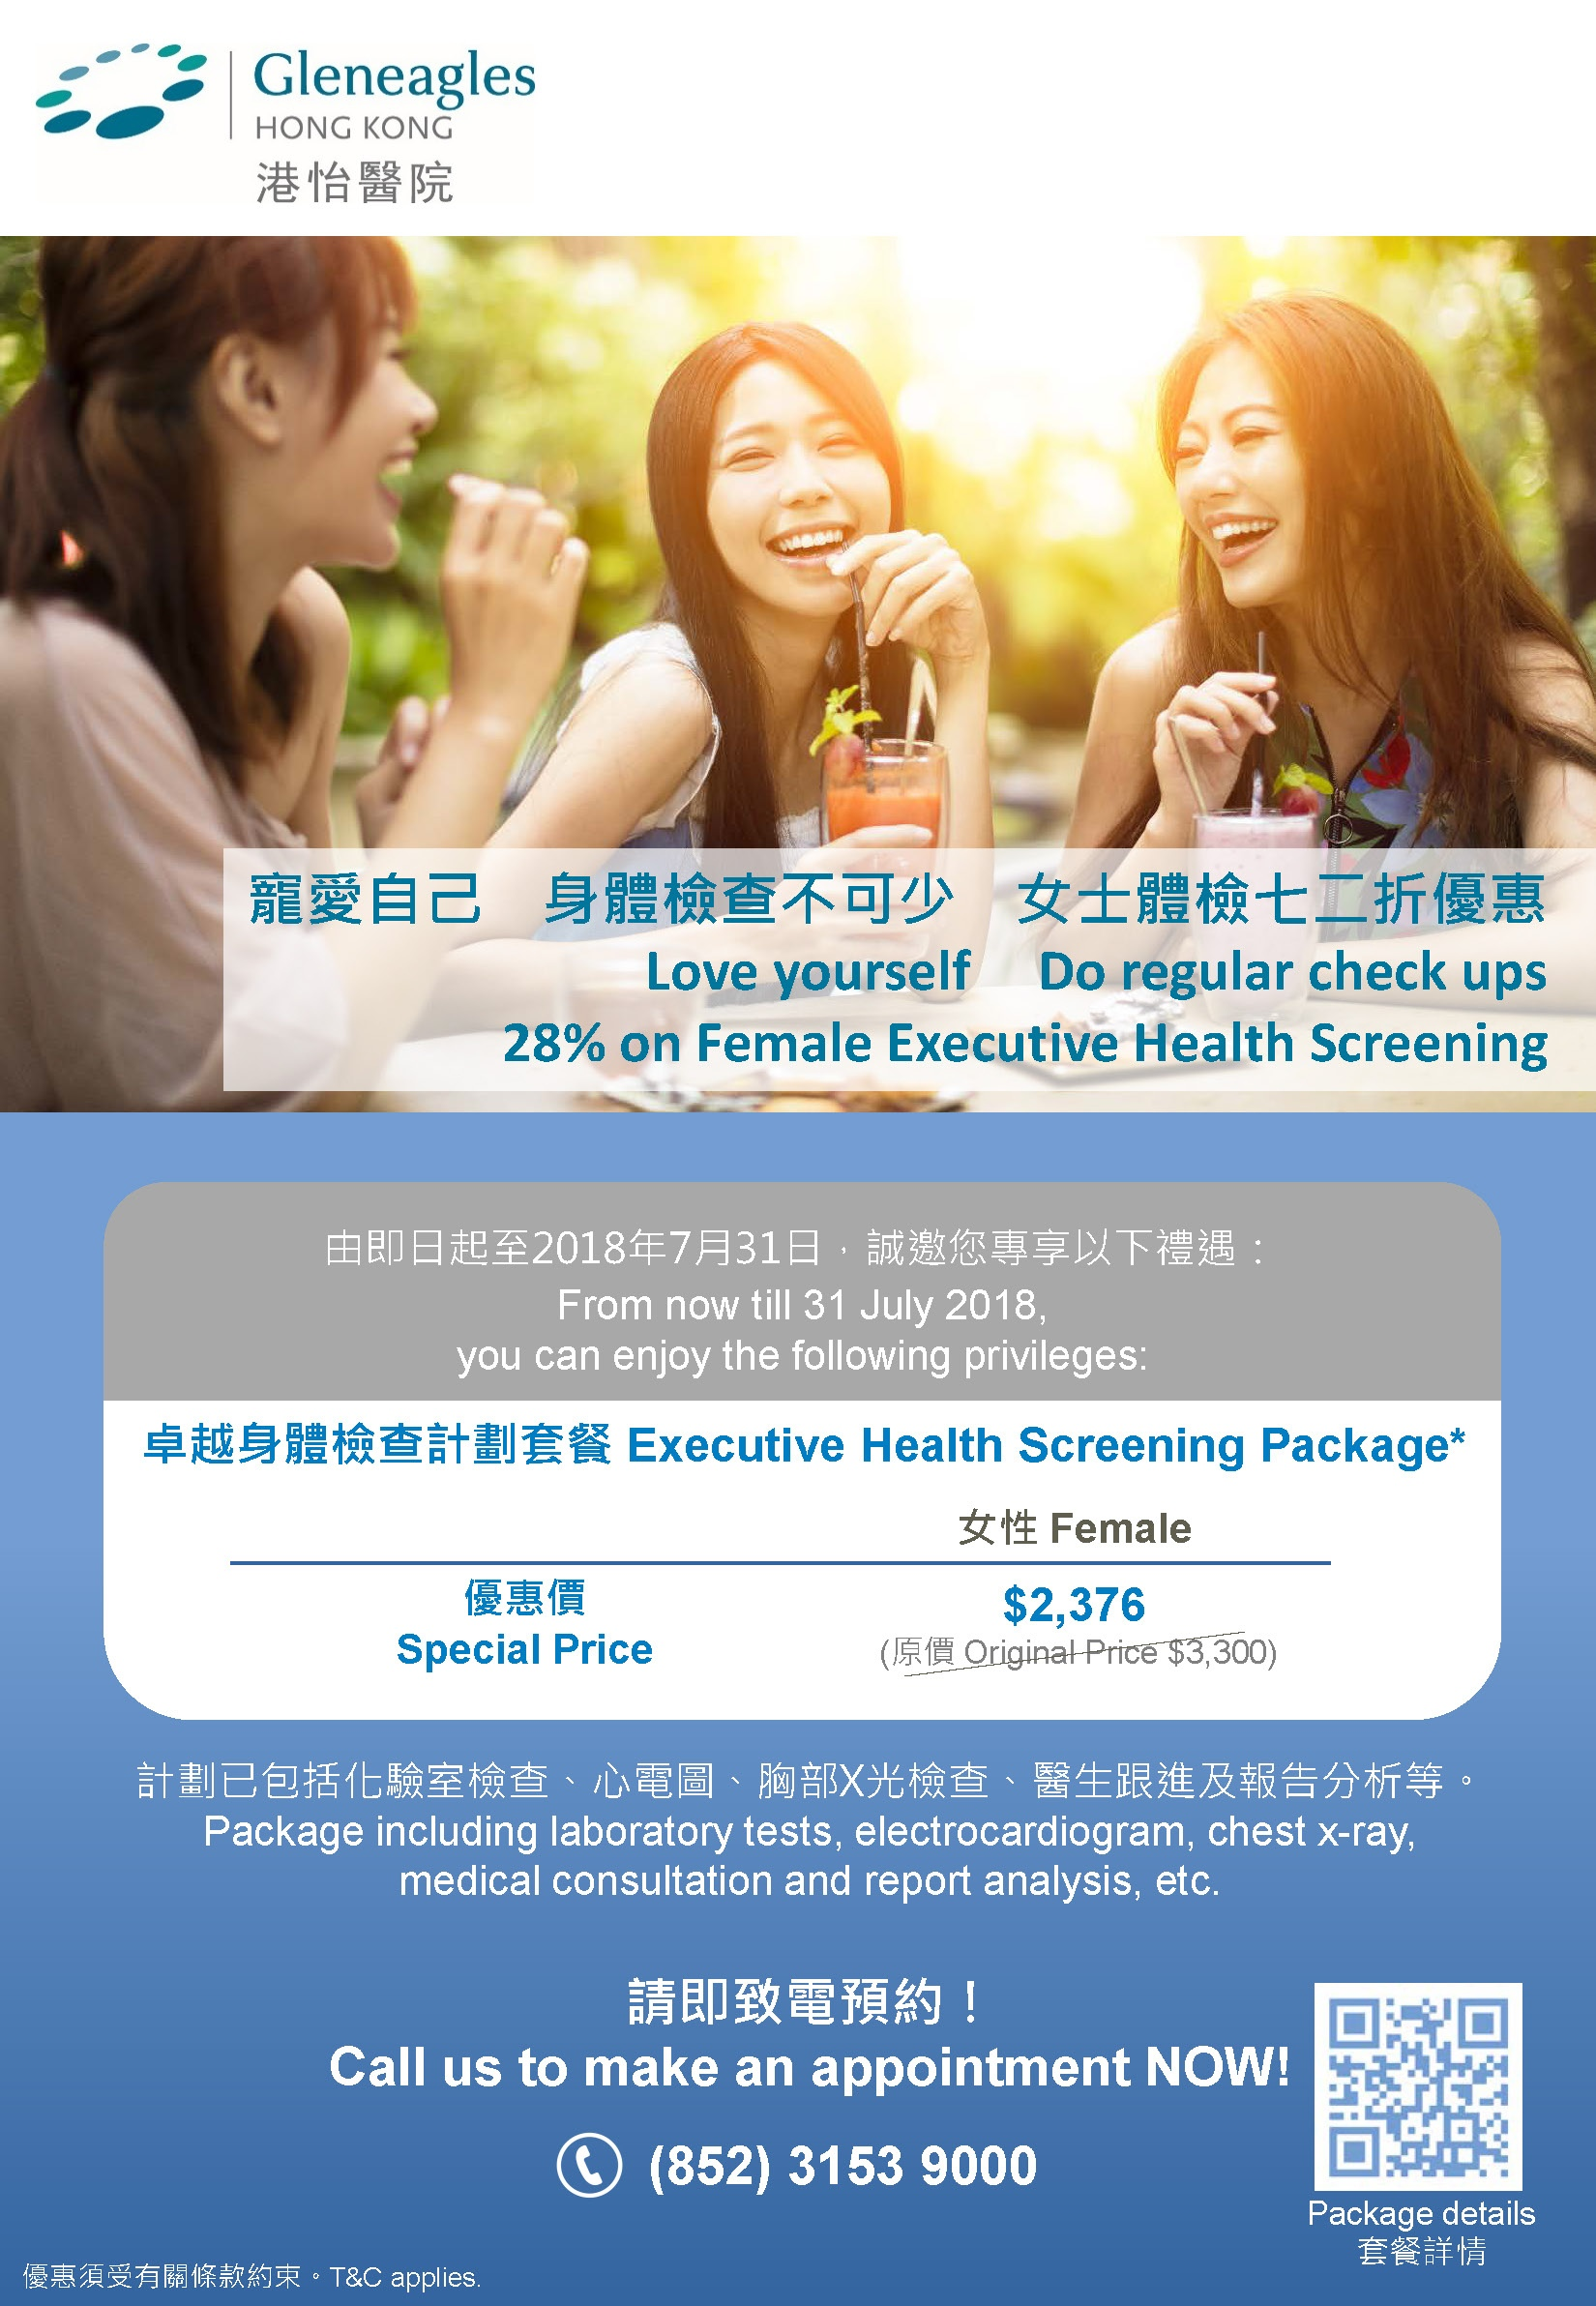 Womens-Day-Promotion-Poster-20180312.jpg#asset:30204